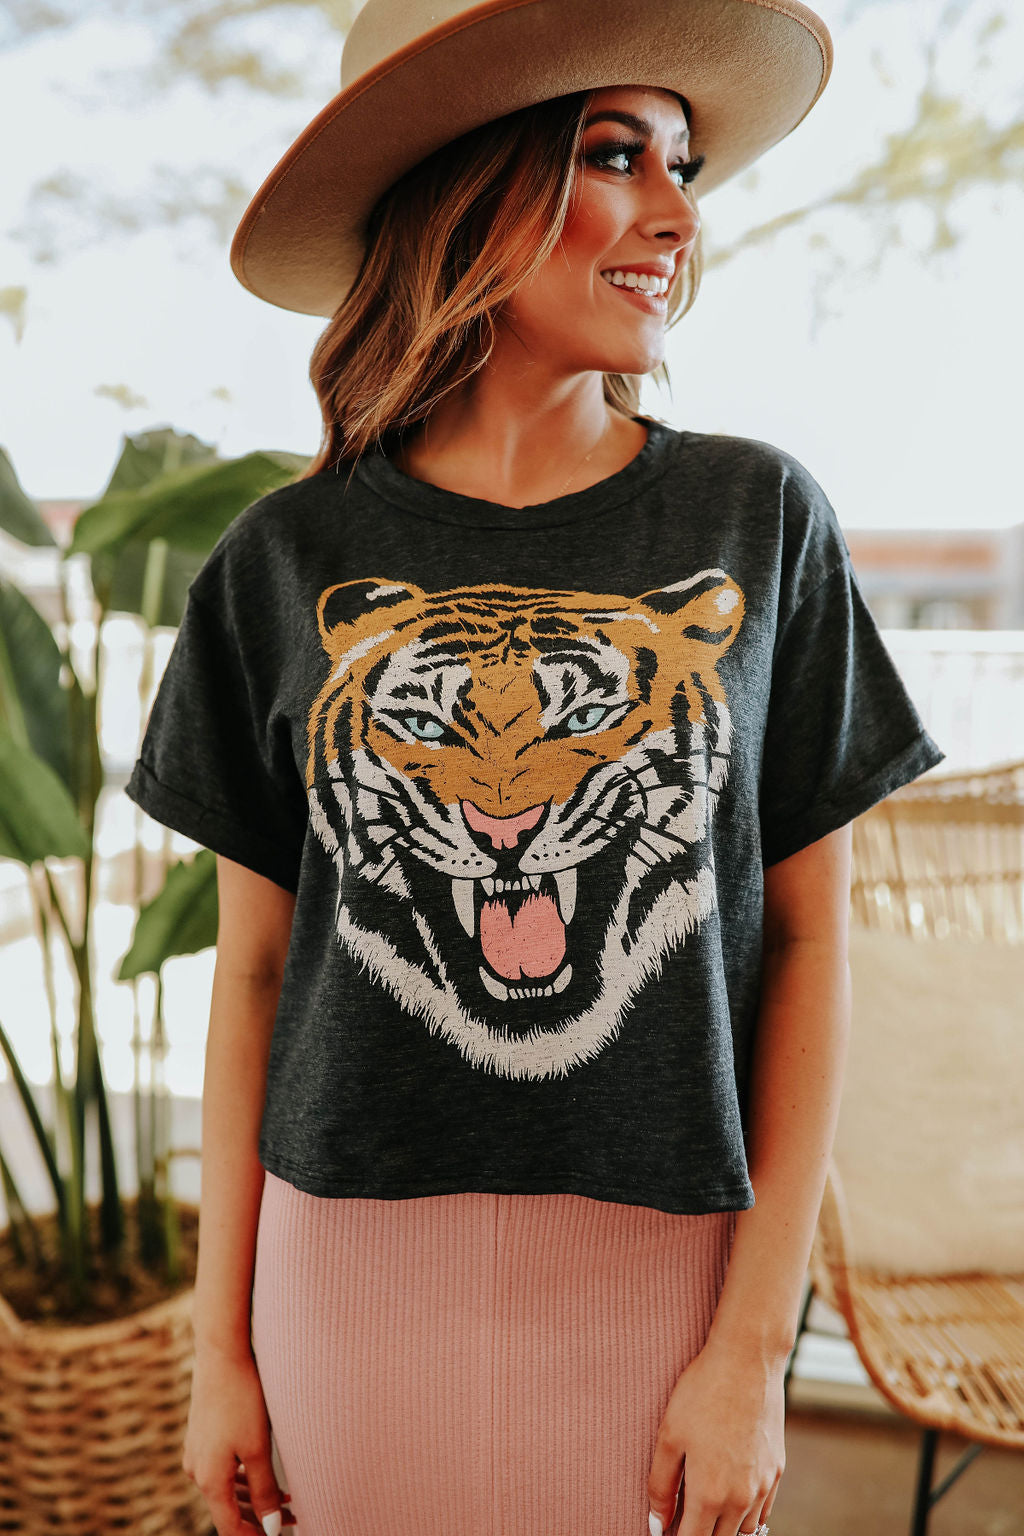 THE TIGER GRAPHIC CROPPED TEE IN CHARCOAL